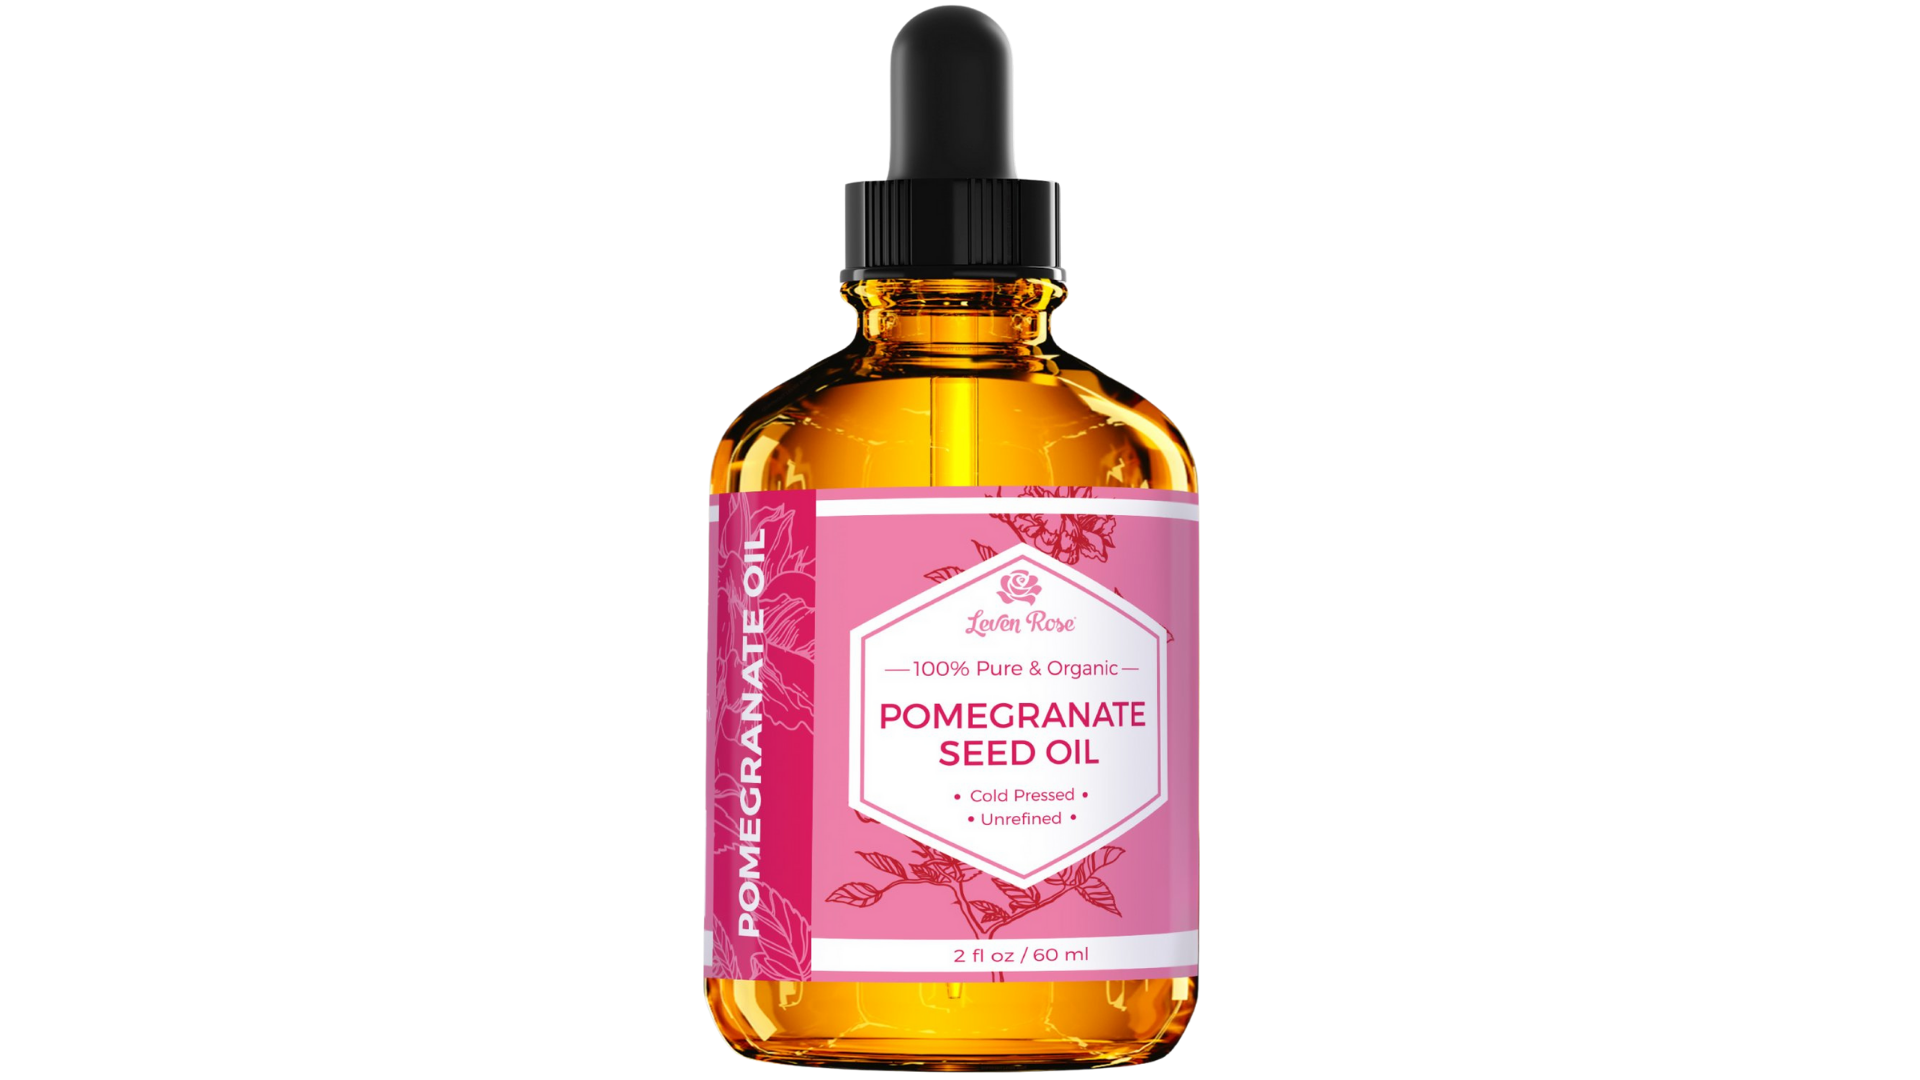 Leven Rose Pomegranate Seed Oil skin and hair